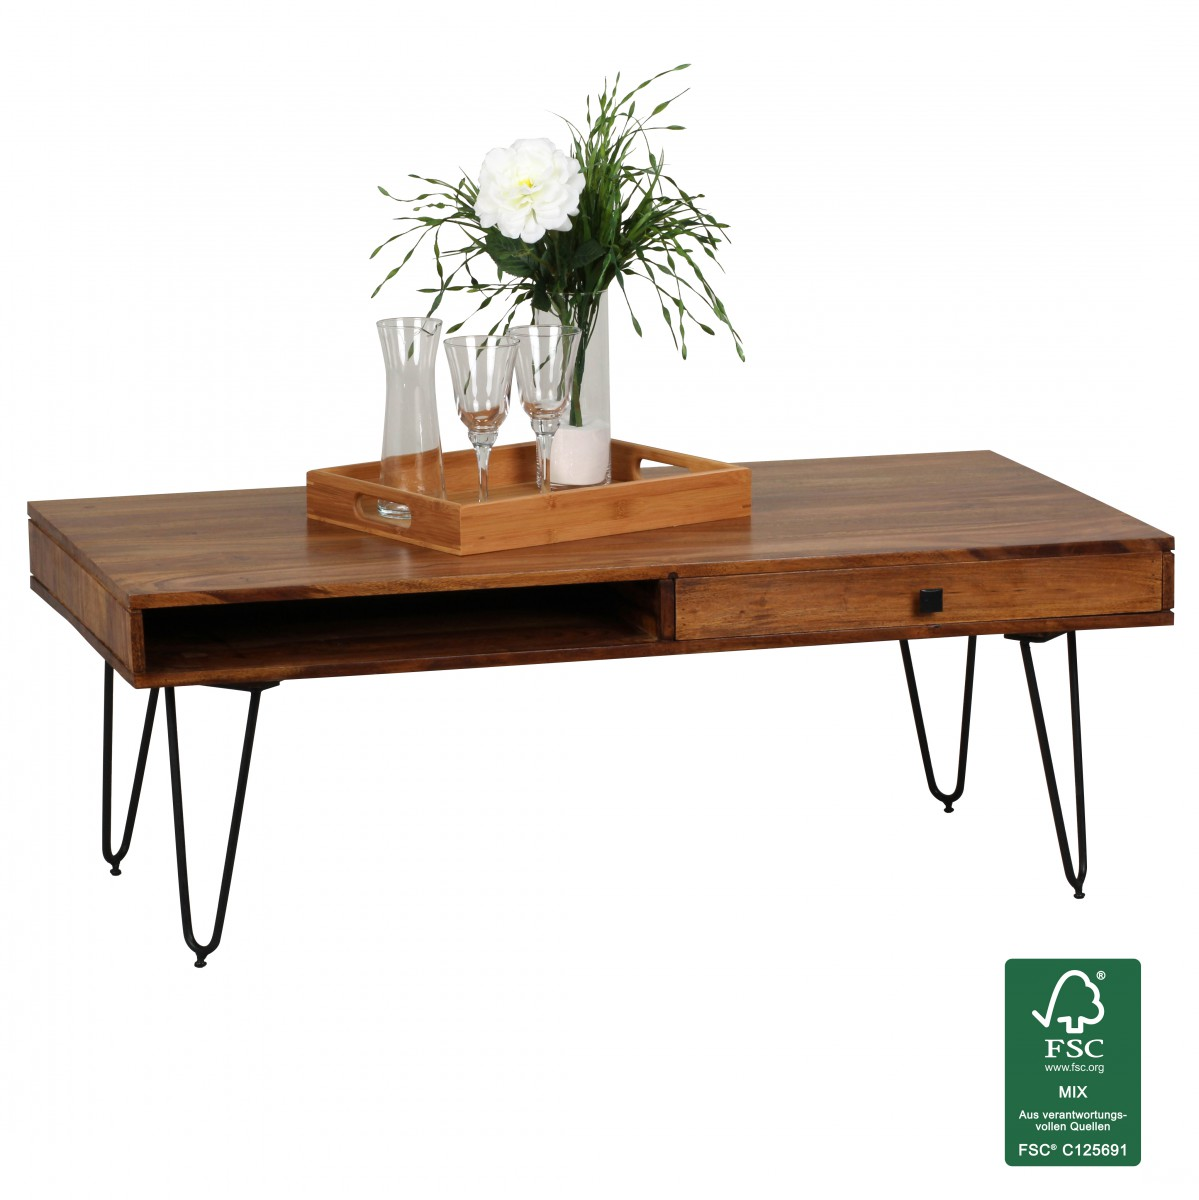 wohnling solid wood sheesham coffee table 120 x 60 x 40 cm with 2 drawers new. Black Bedroom Furniture Sets. Home Design Ideas